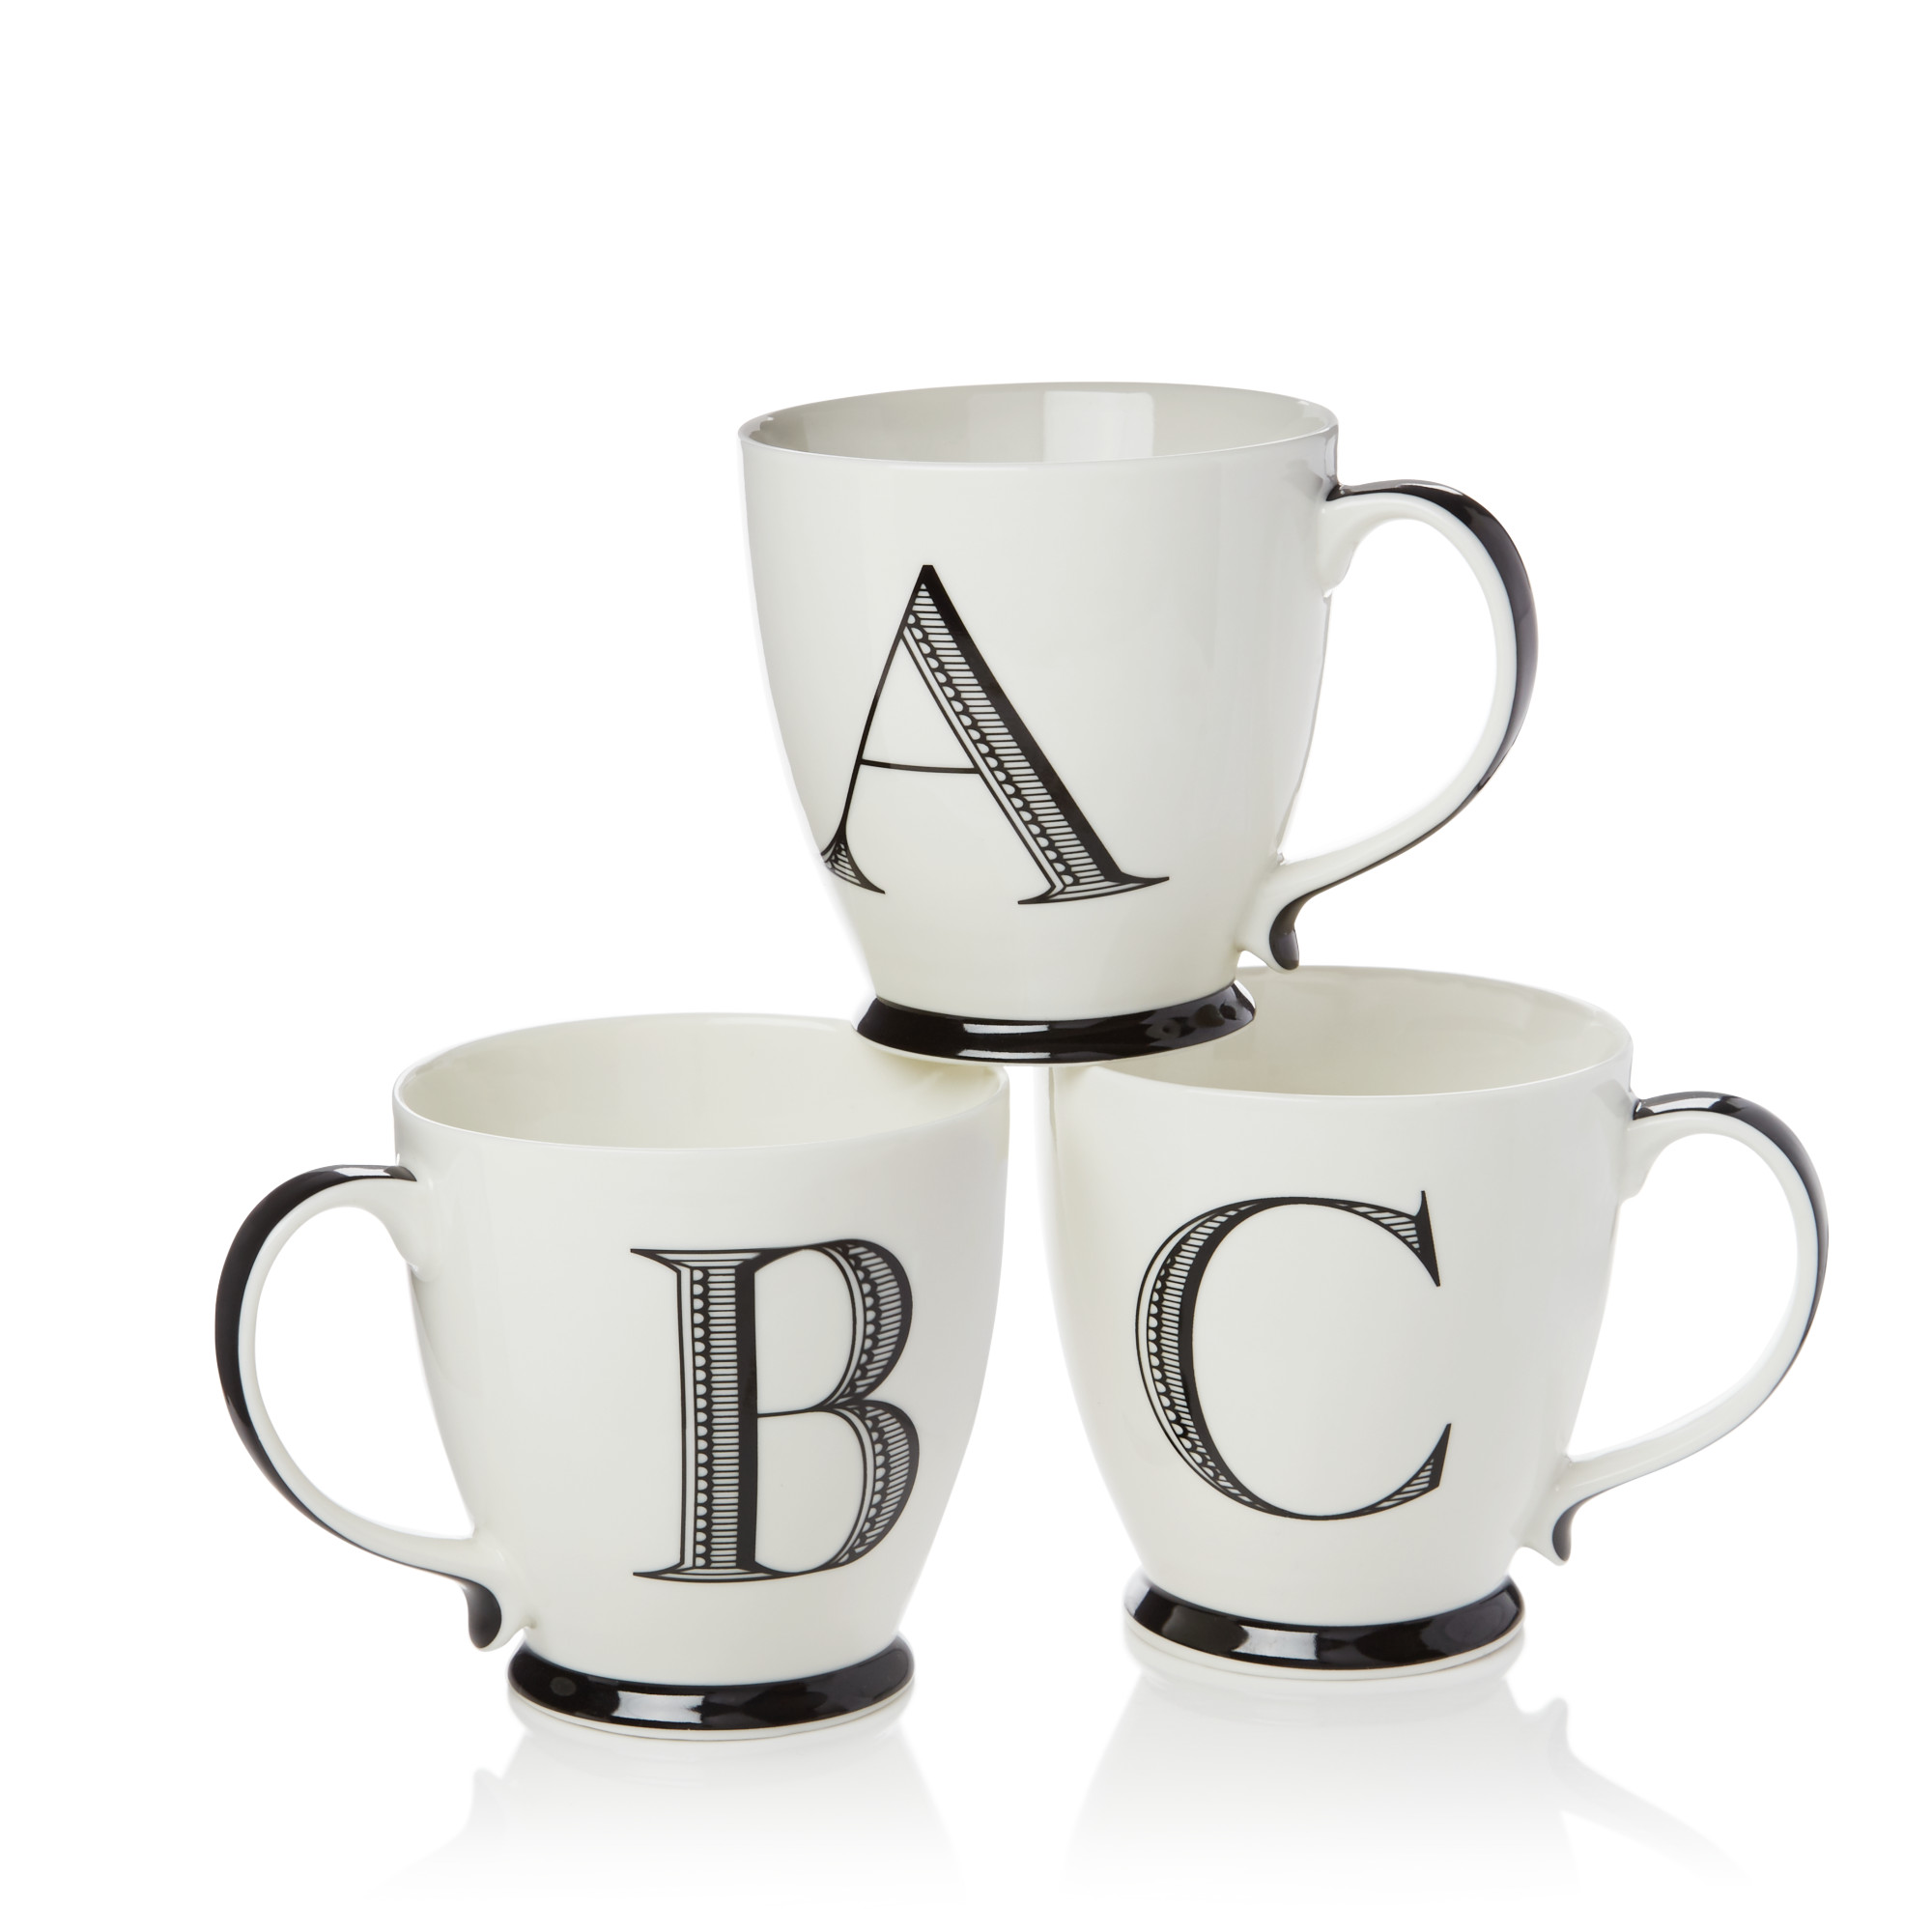 Sparrow & Wren Monogrammed Mug at Bloomingdale's, $8